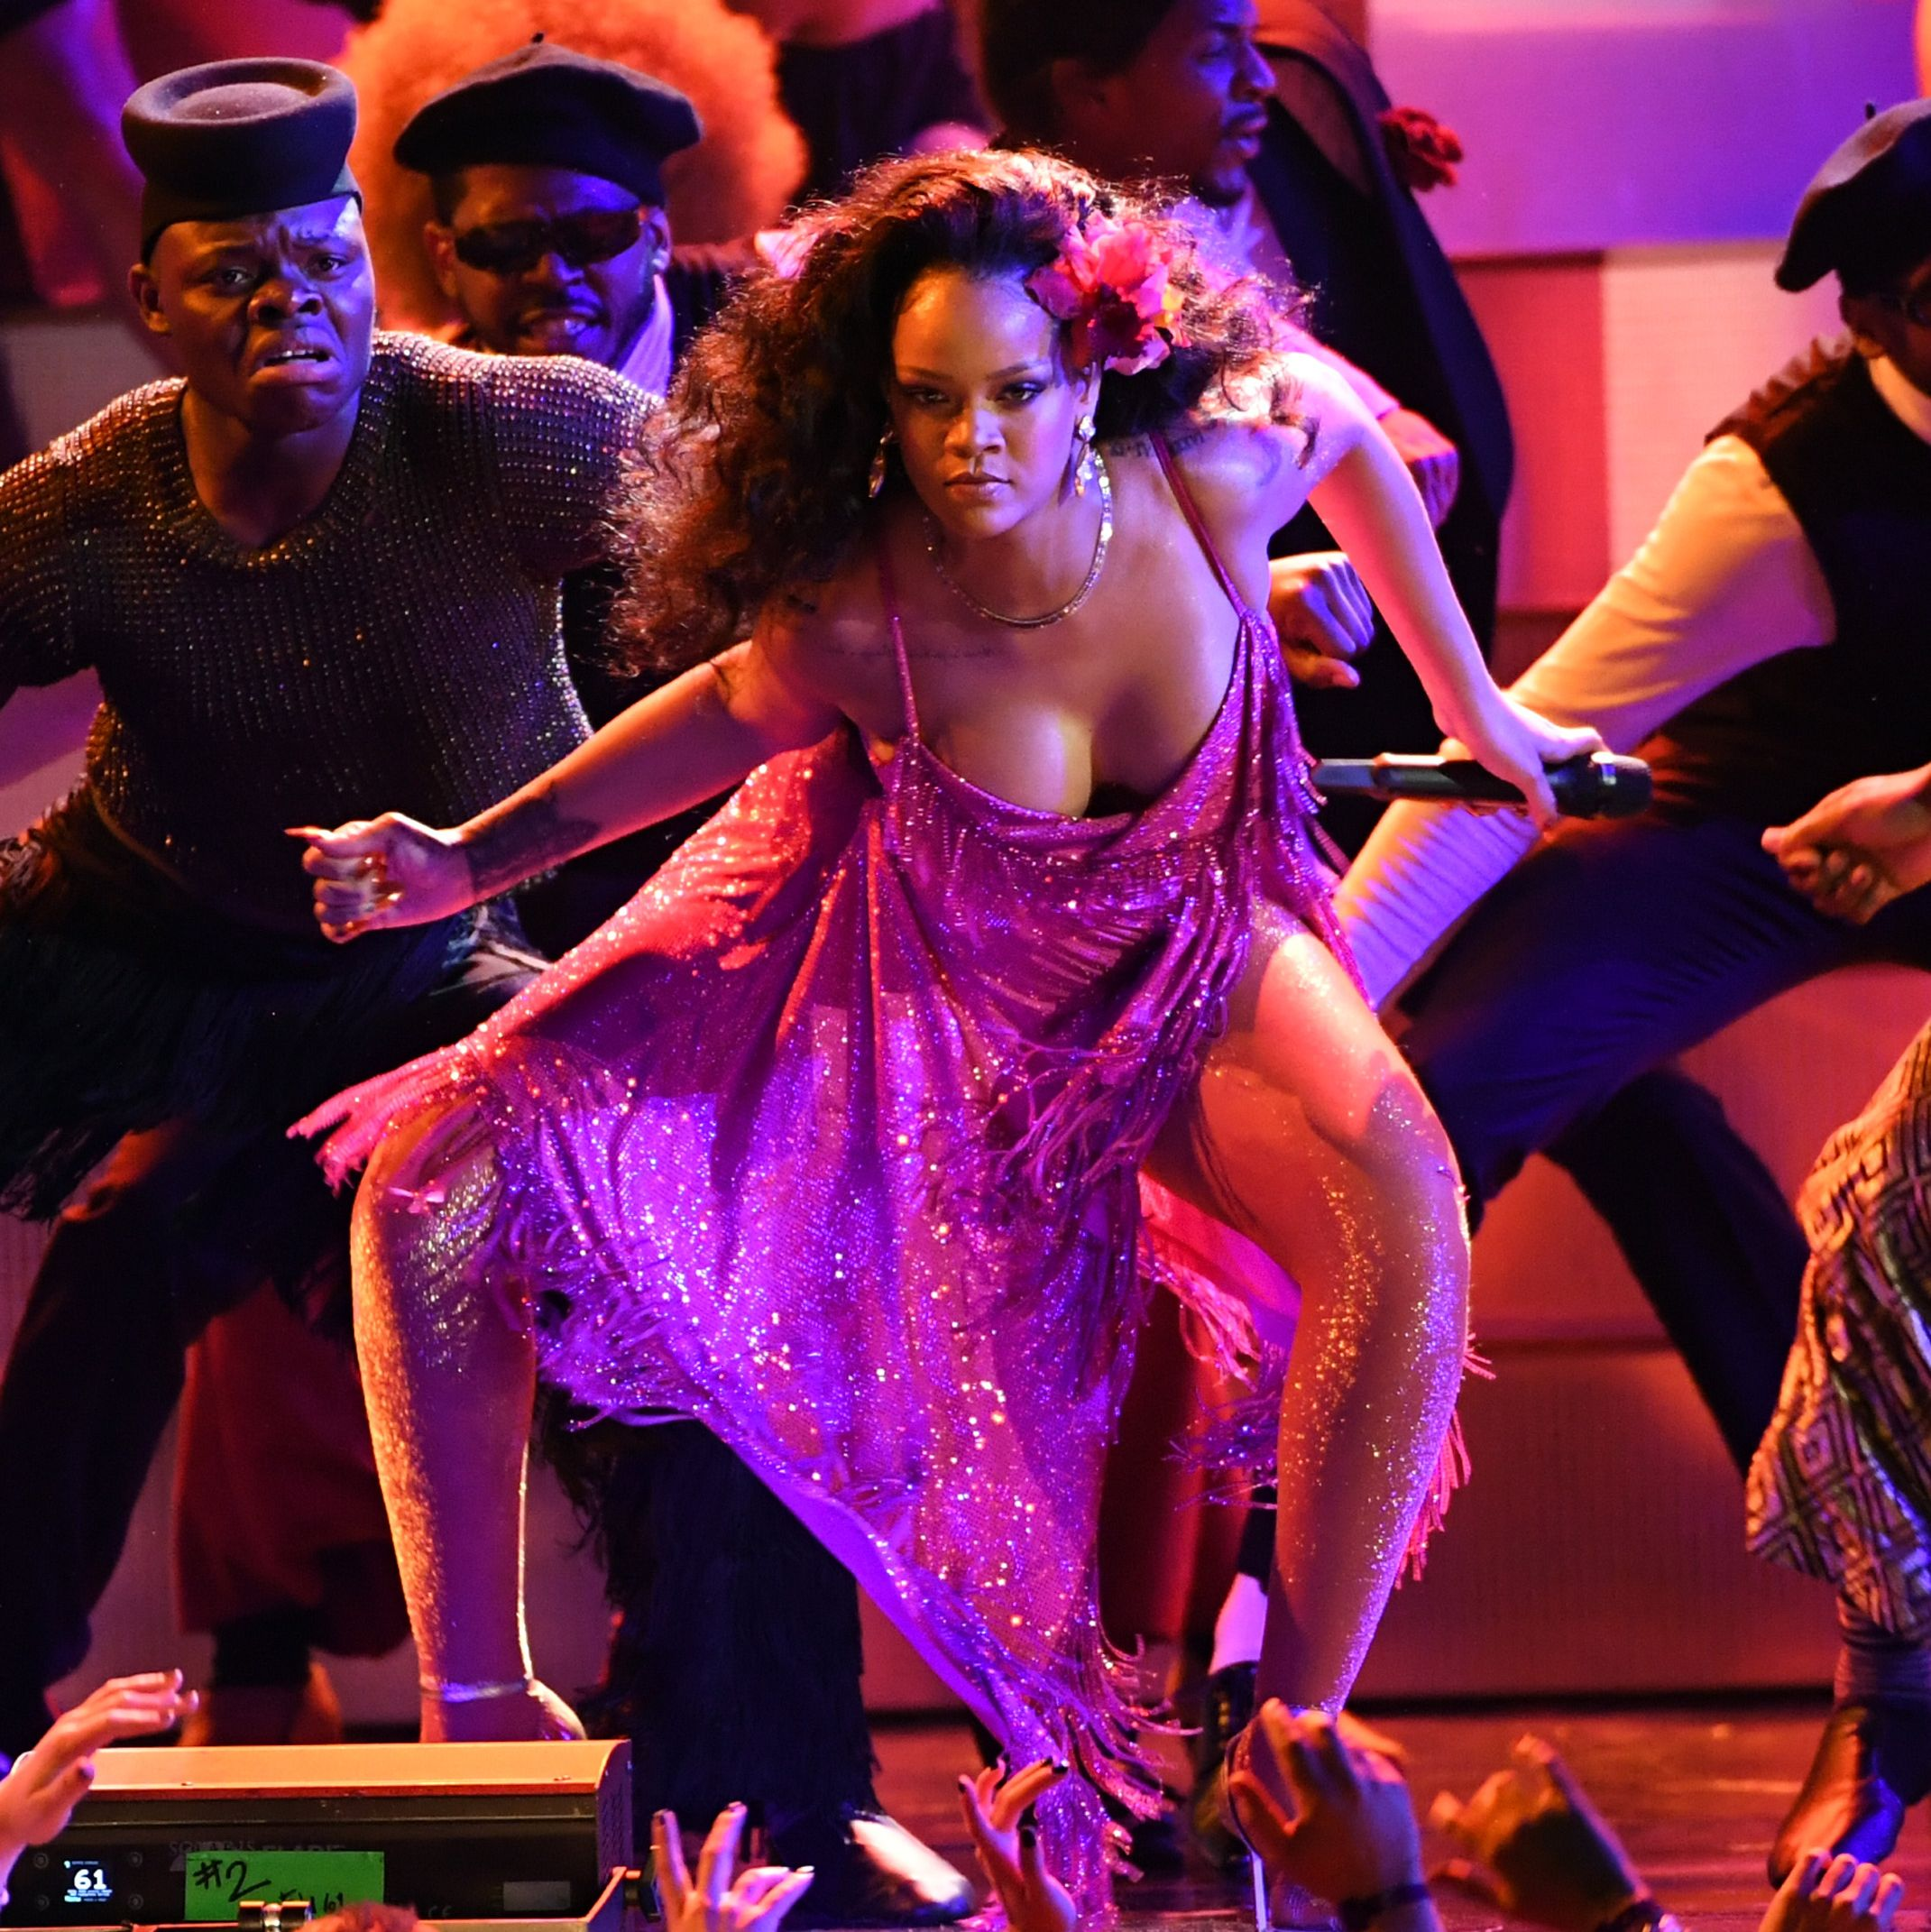 Rihanna Refused to Play the Super Bowl Halftime Show to Support Colin Kaepernick